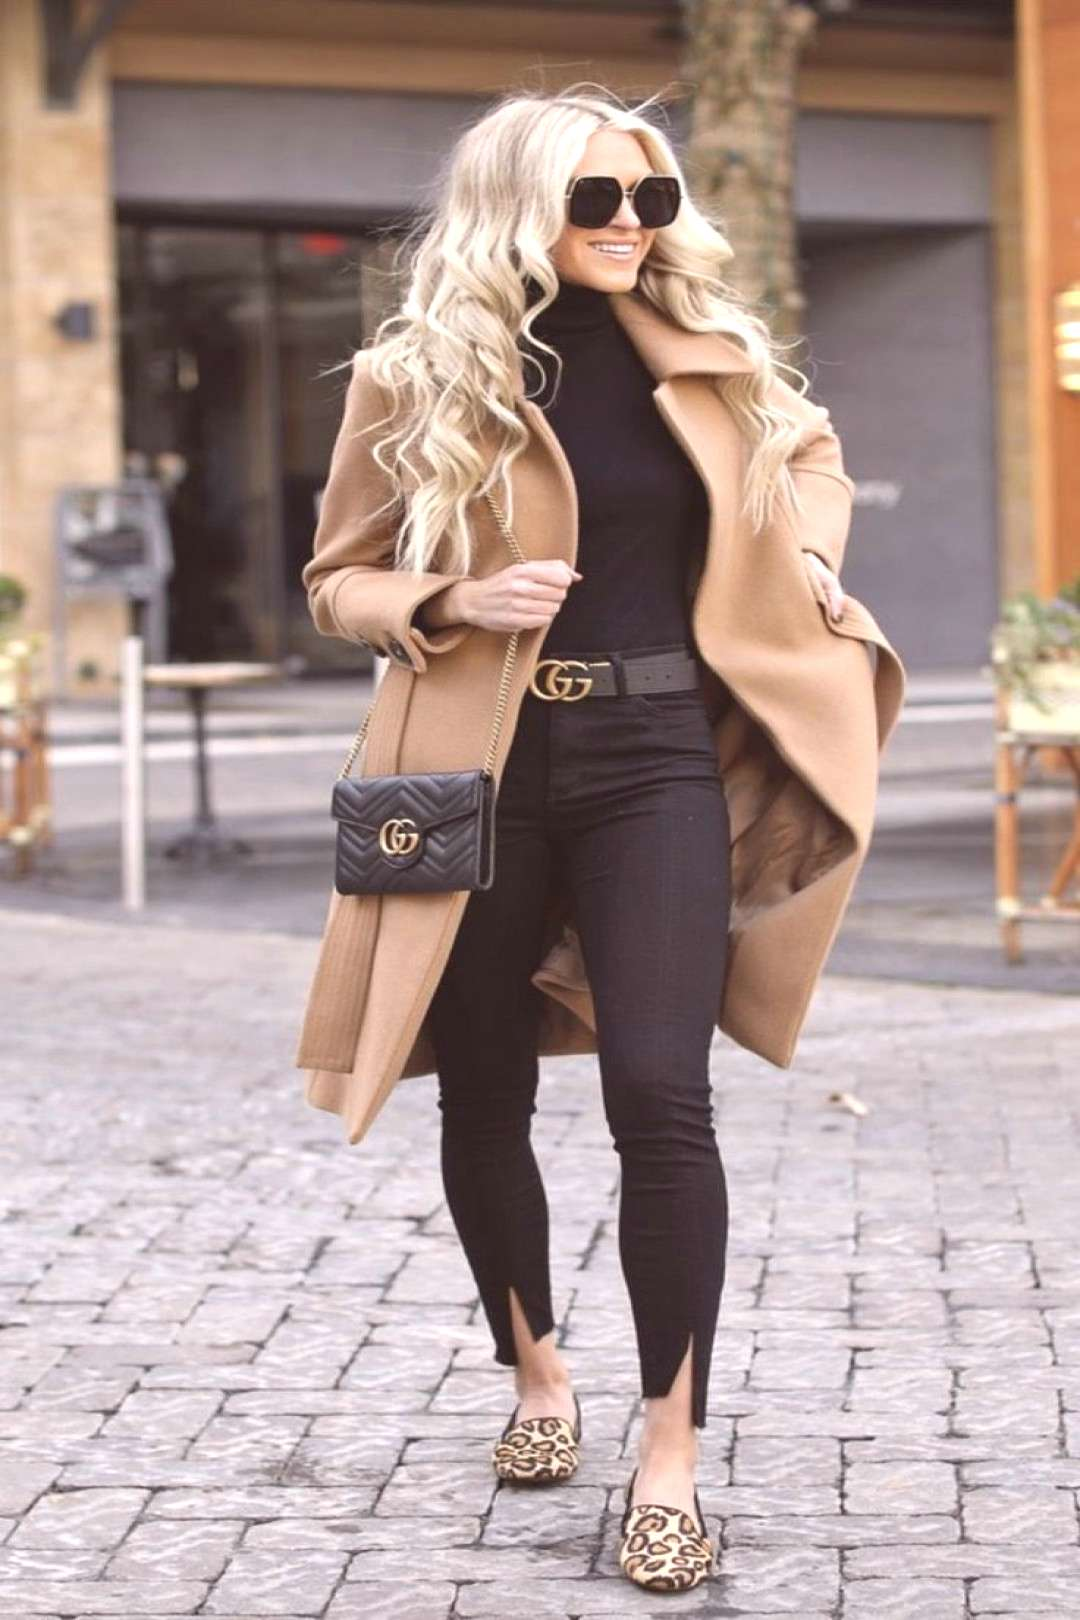 40 Outstanding Casual Outfits To Fall In Love With | The Chic Pursuit 40 Outstanding Casual Outfit